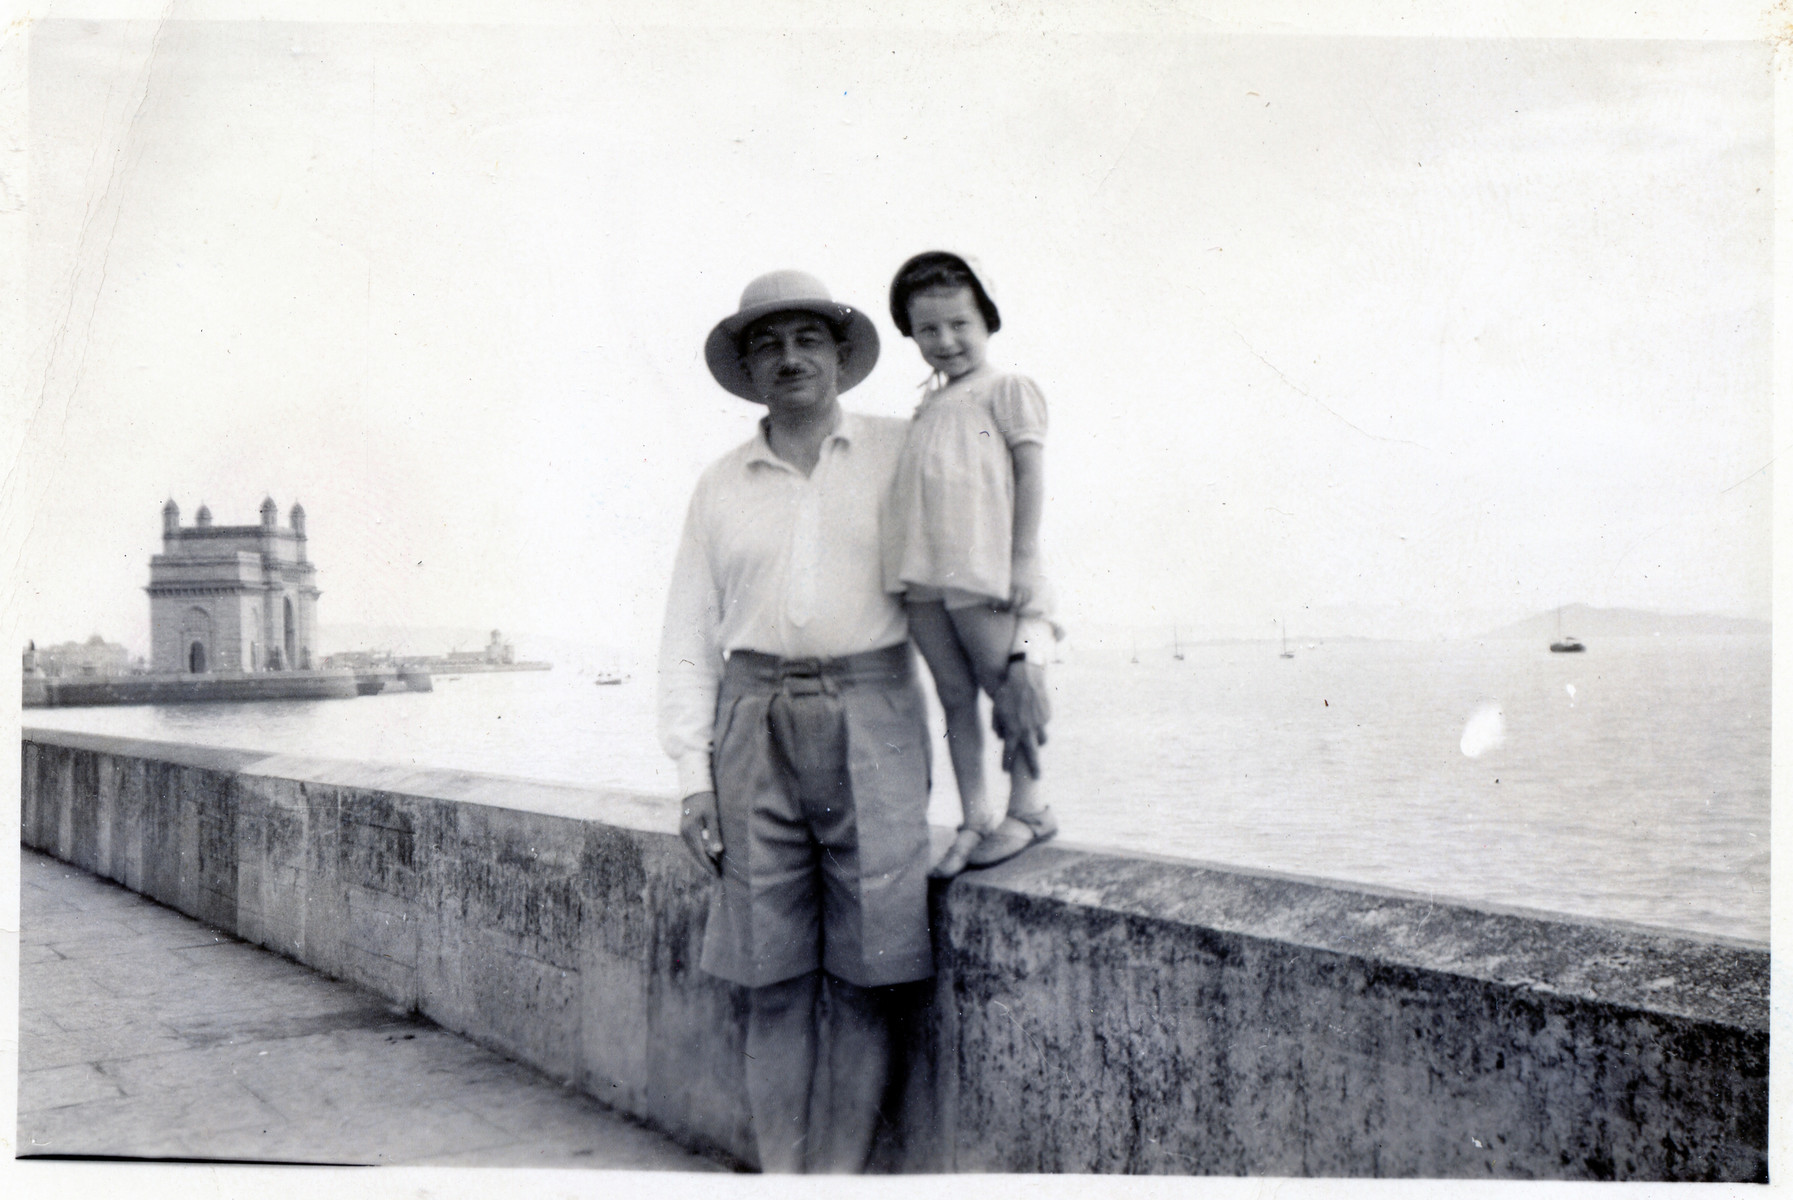 Jerzy and Joasia Klein pose in Bombay, India.